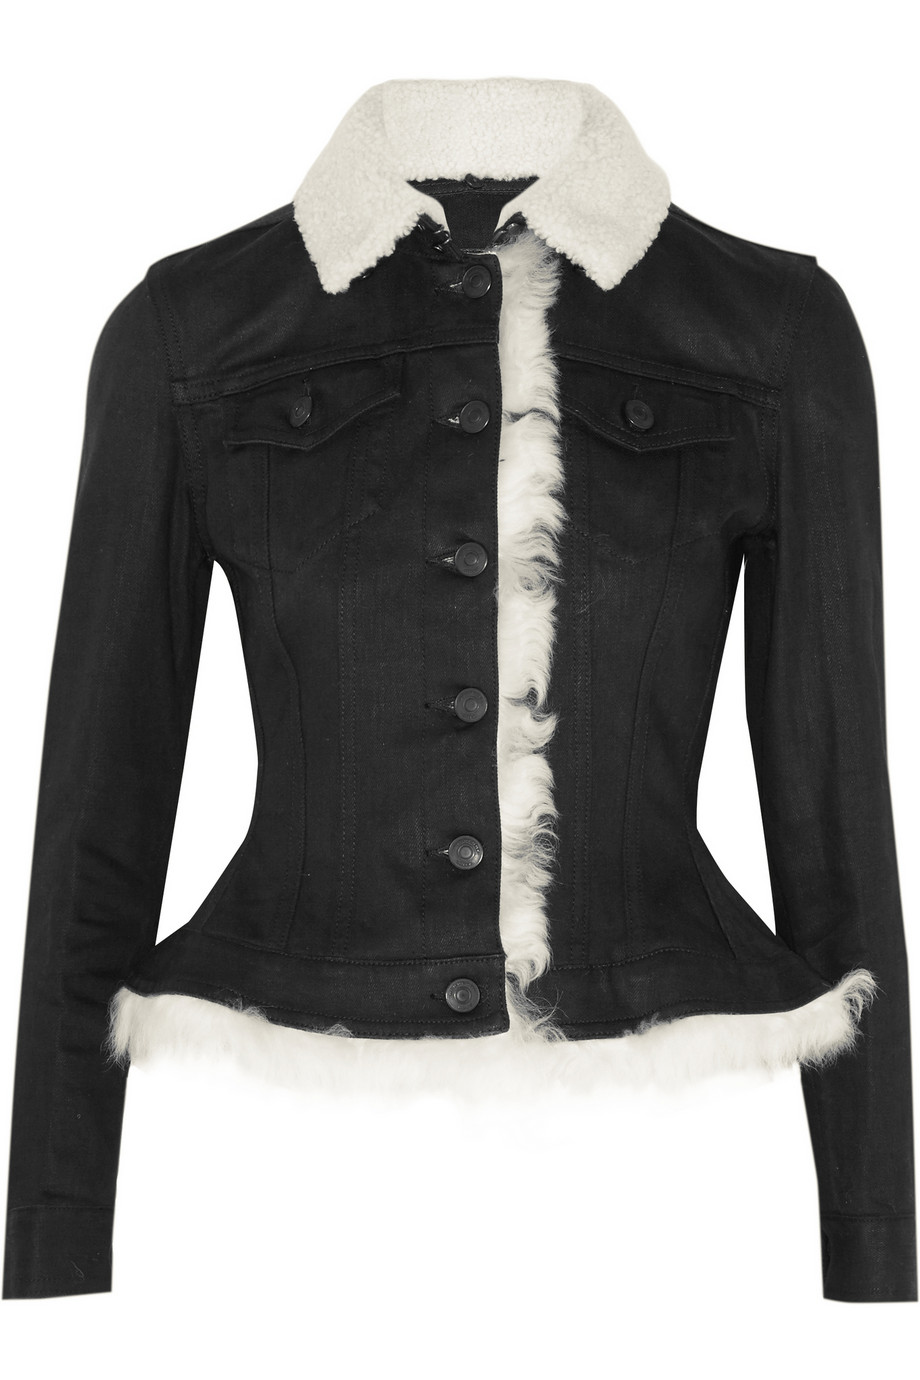 Burberry Brit  jacket - was $995, now $597